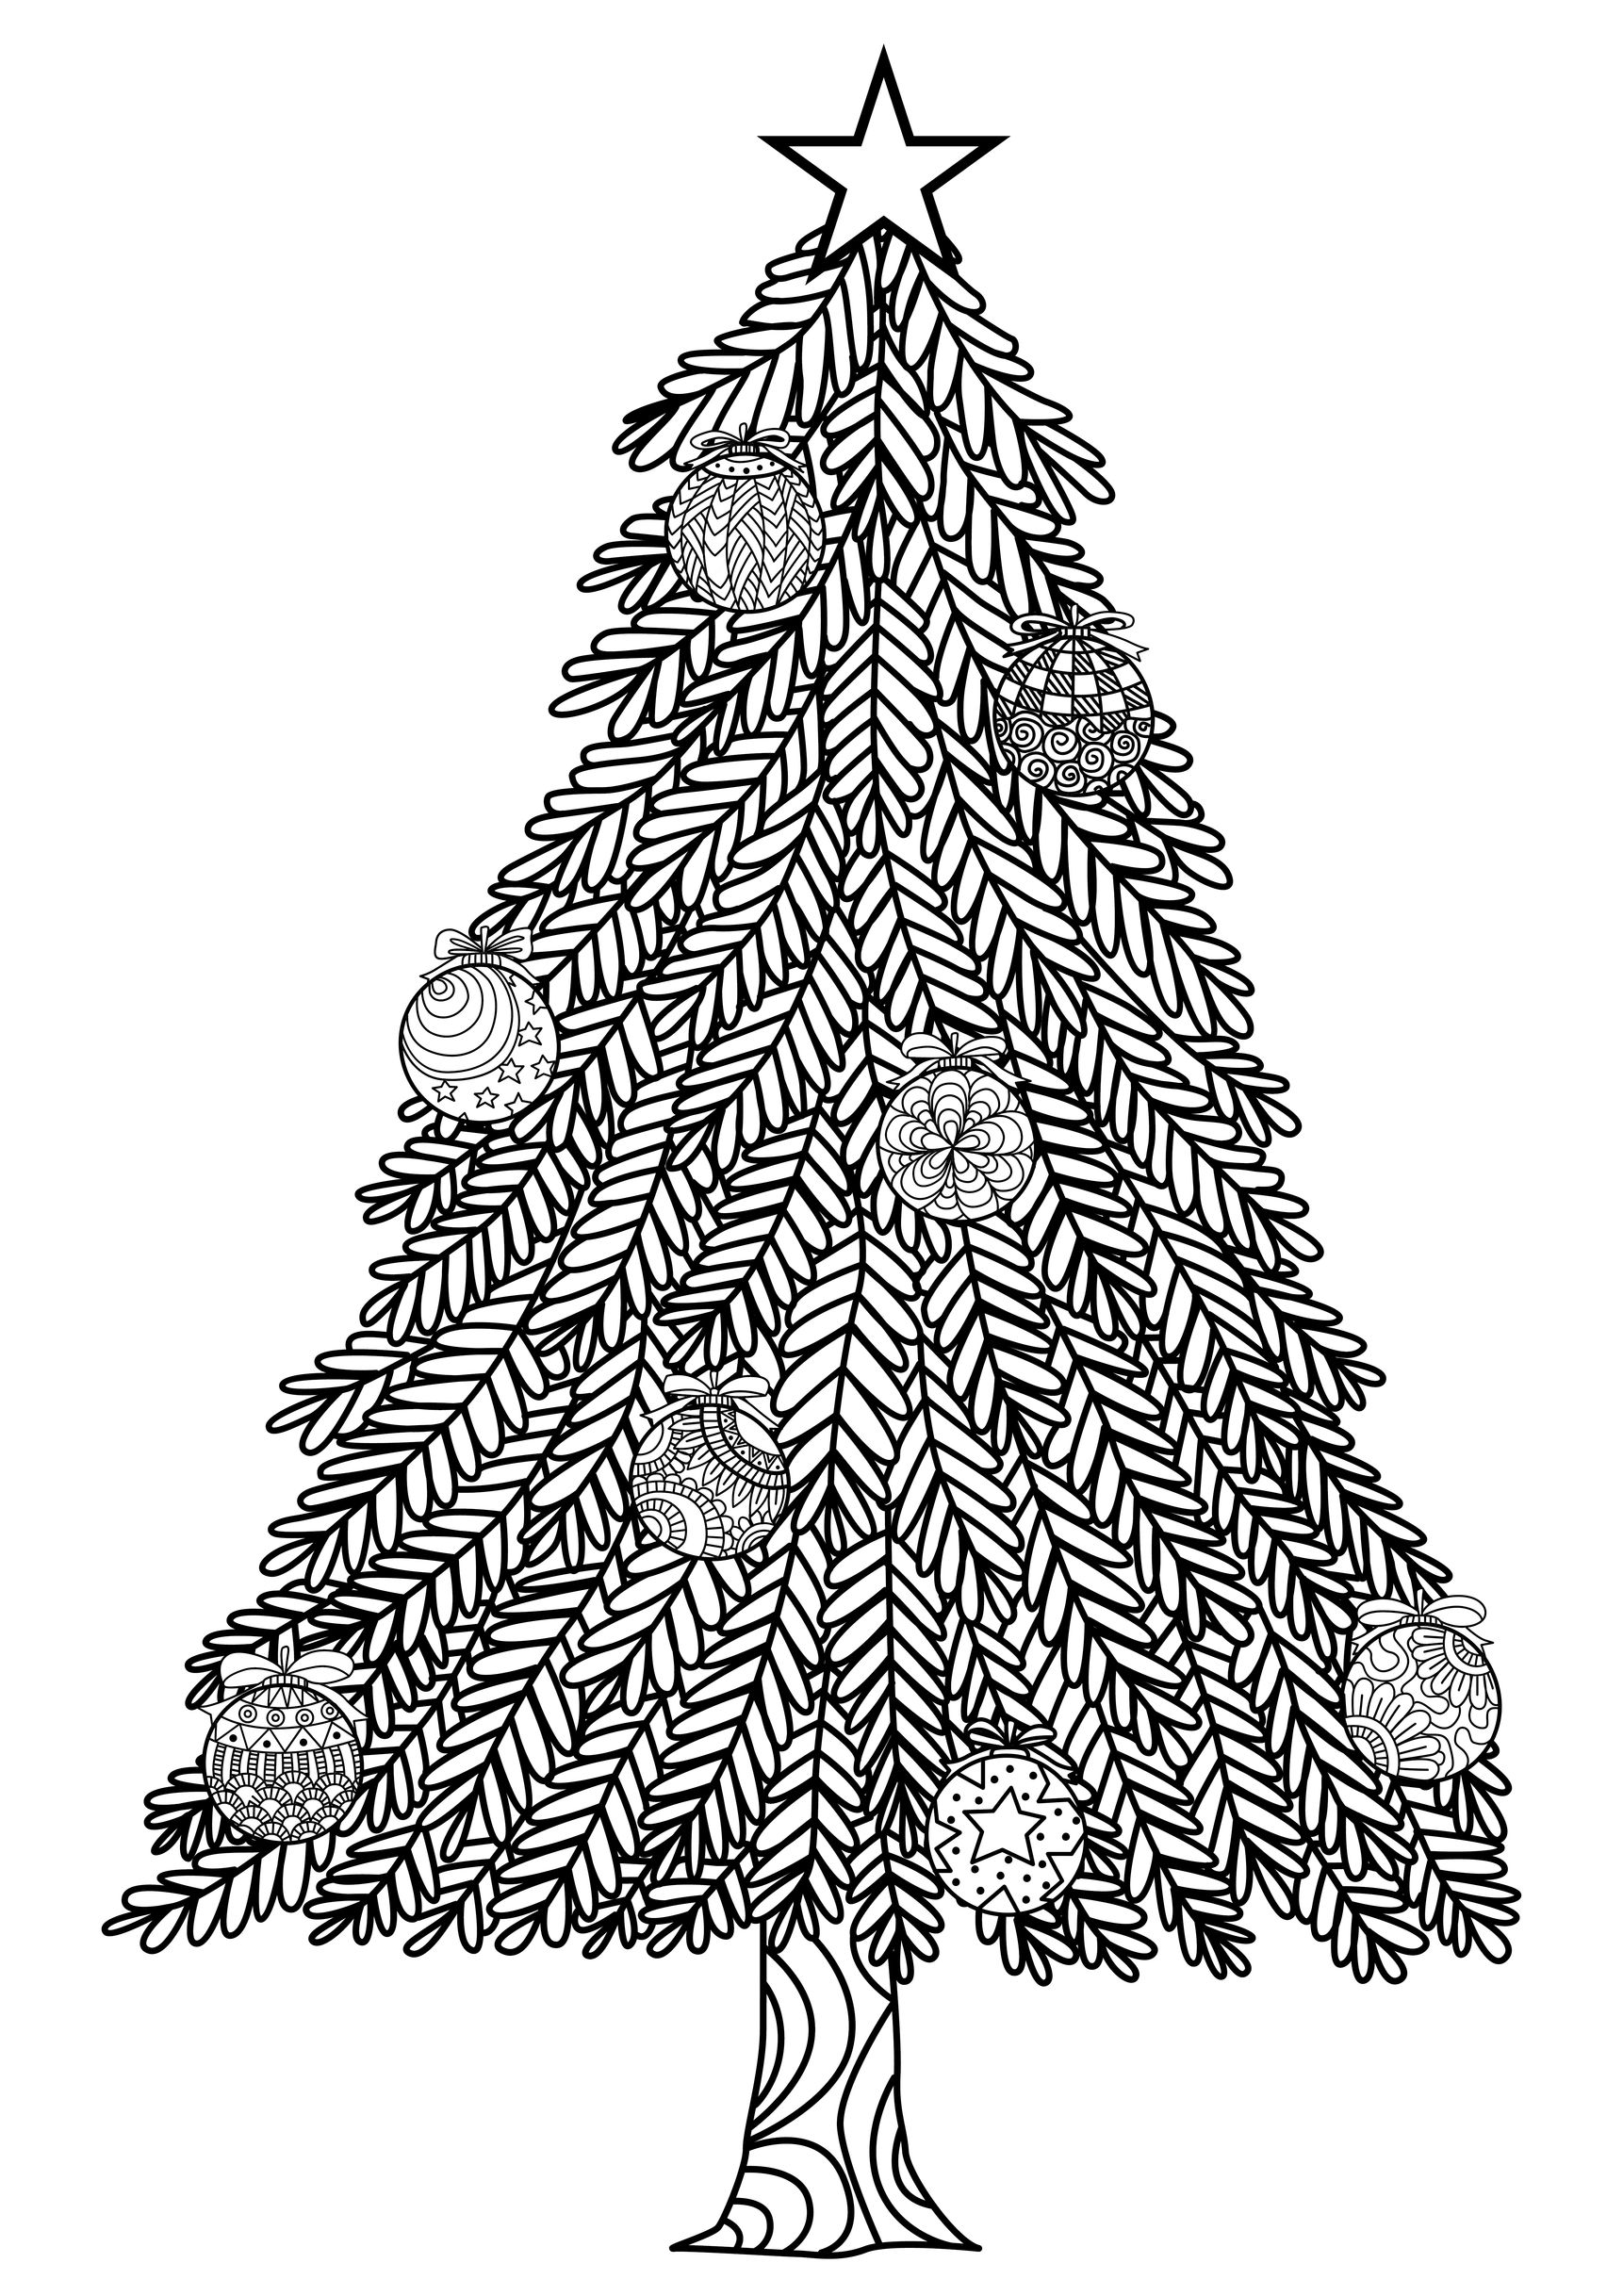 Santa Tree Coloring Page With Download How To Colour Christmas Free